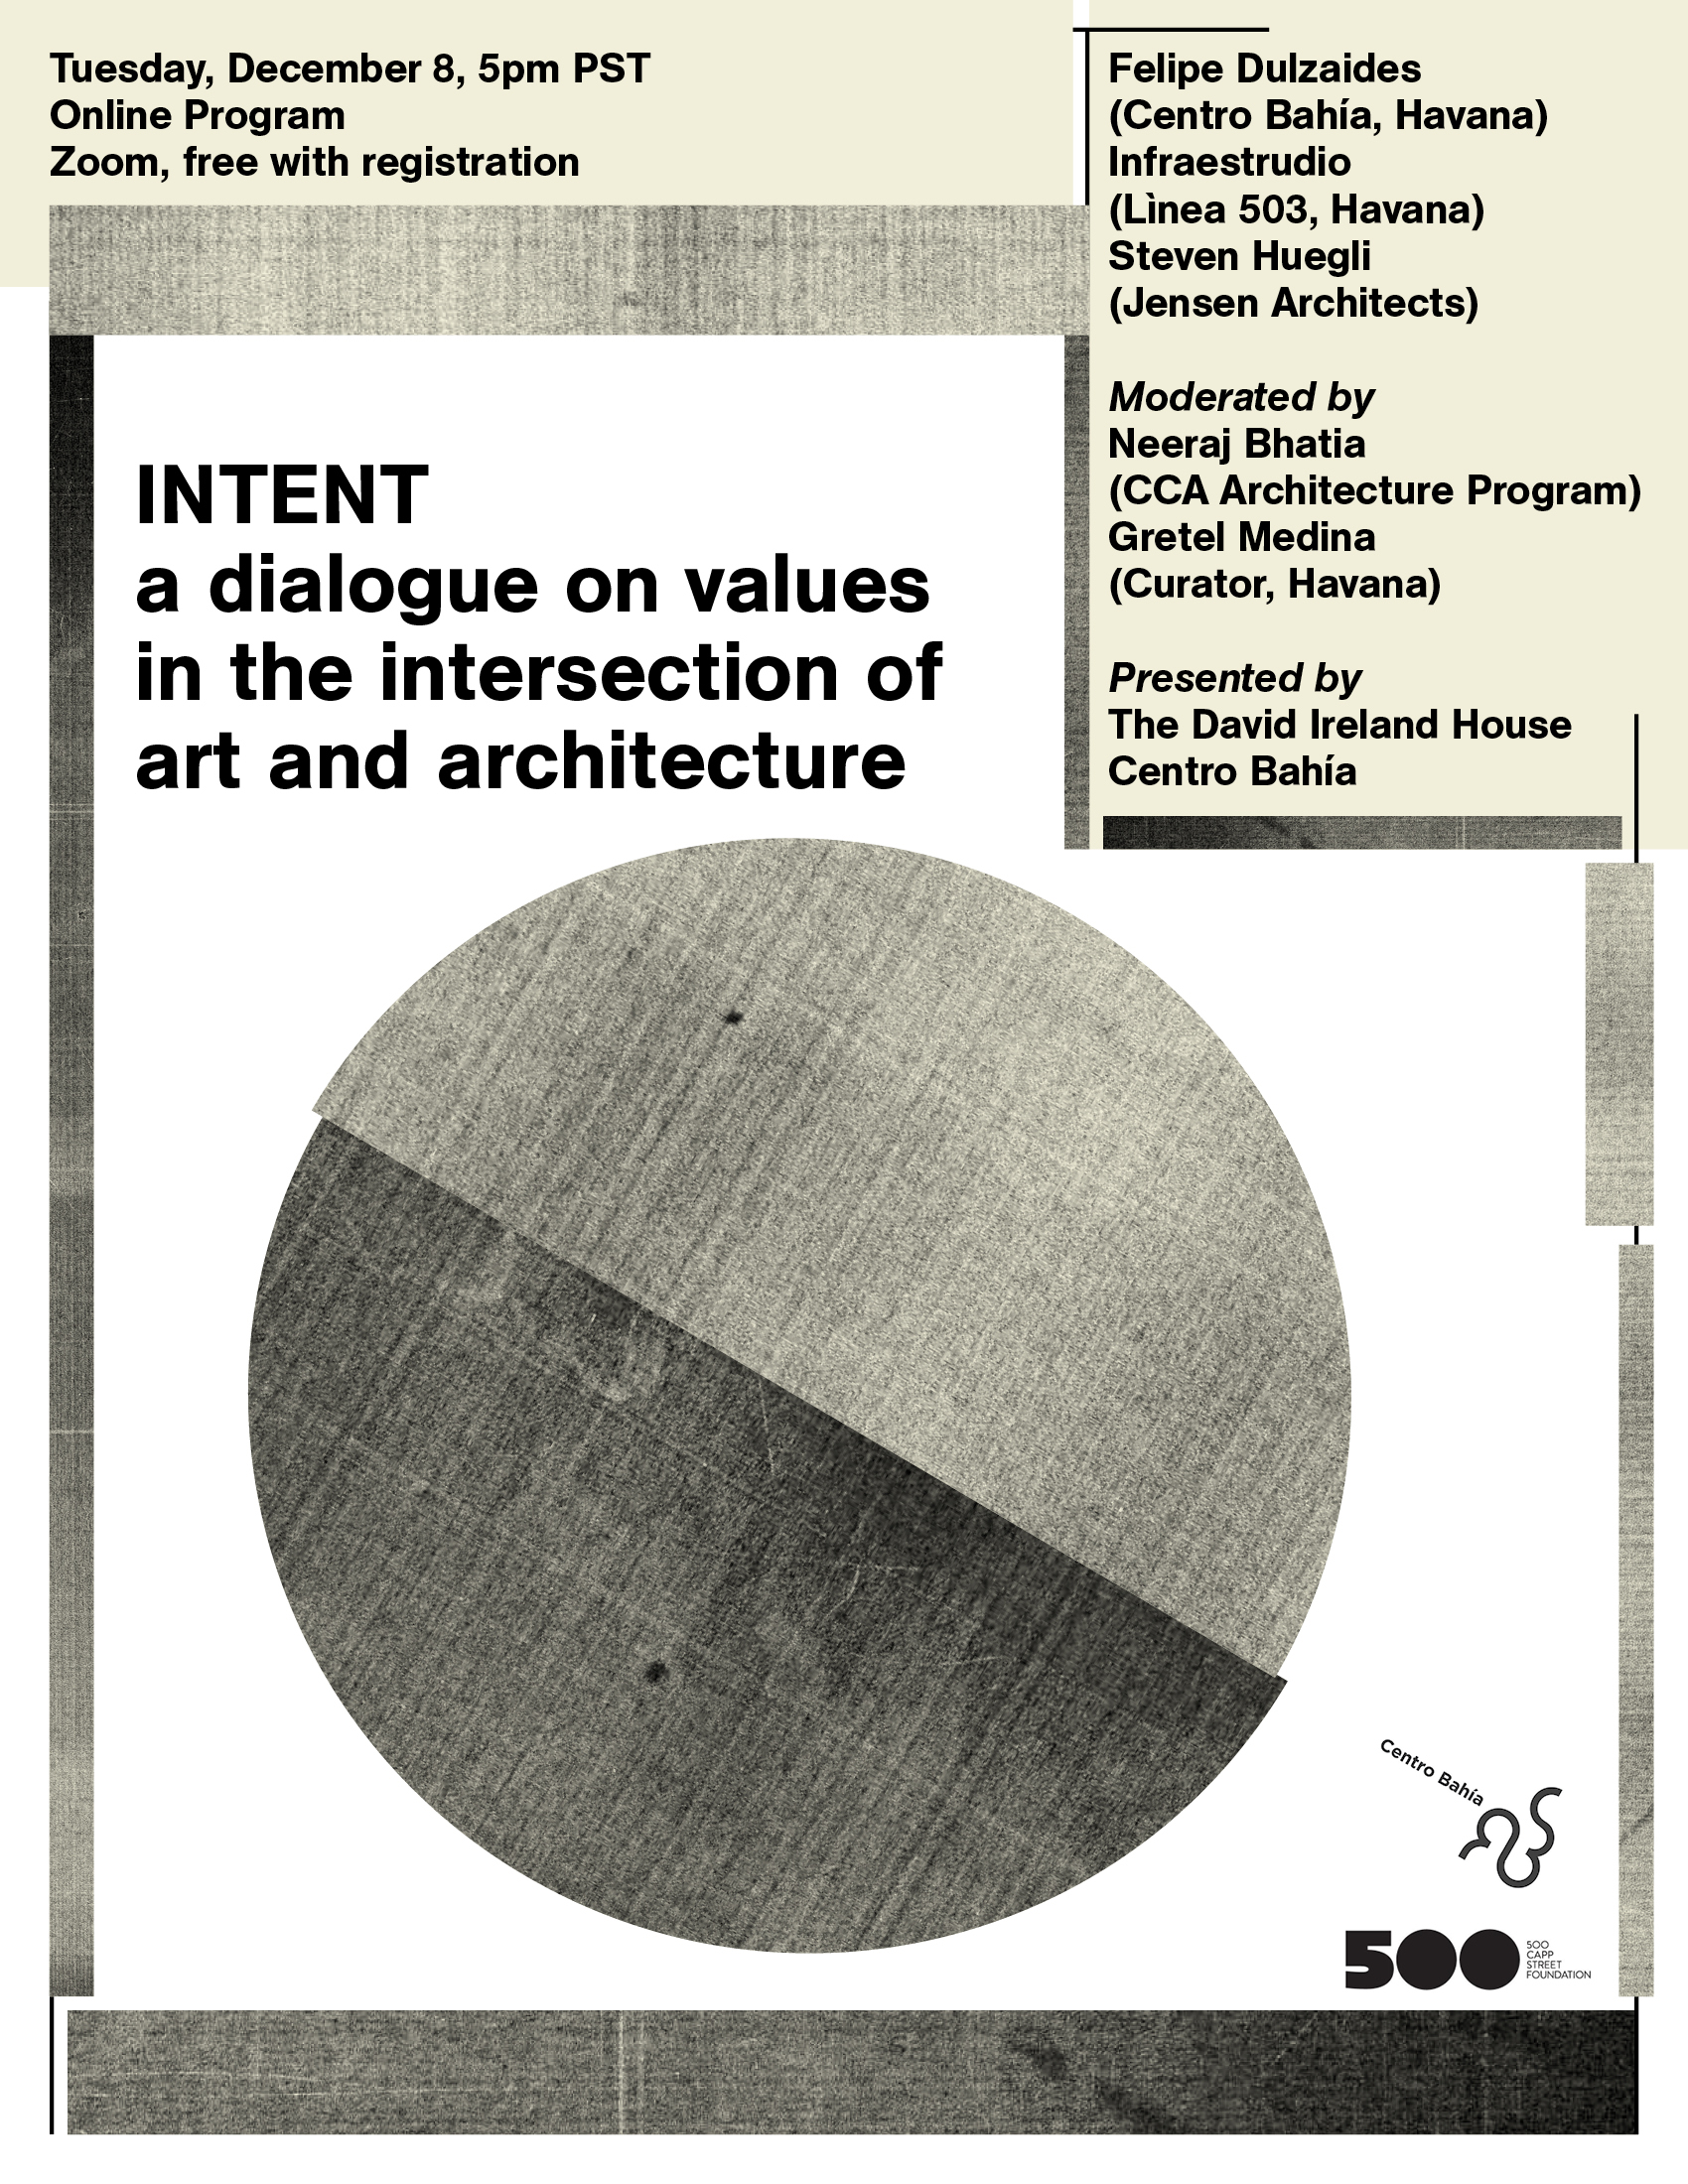 INTENT: a dialogue on values in the intersection of art and architecture